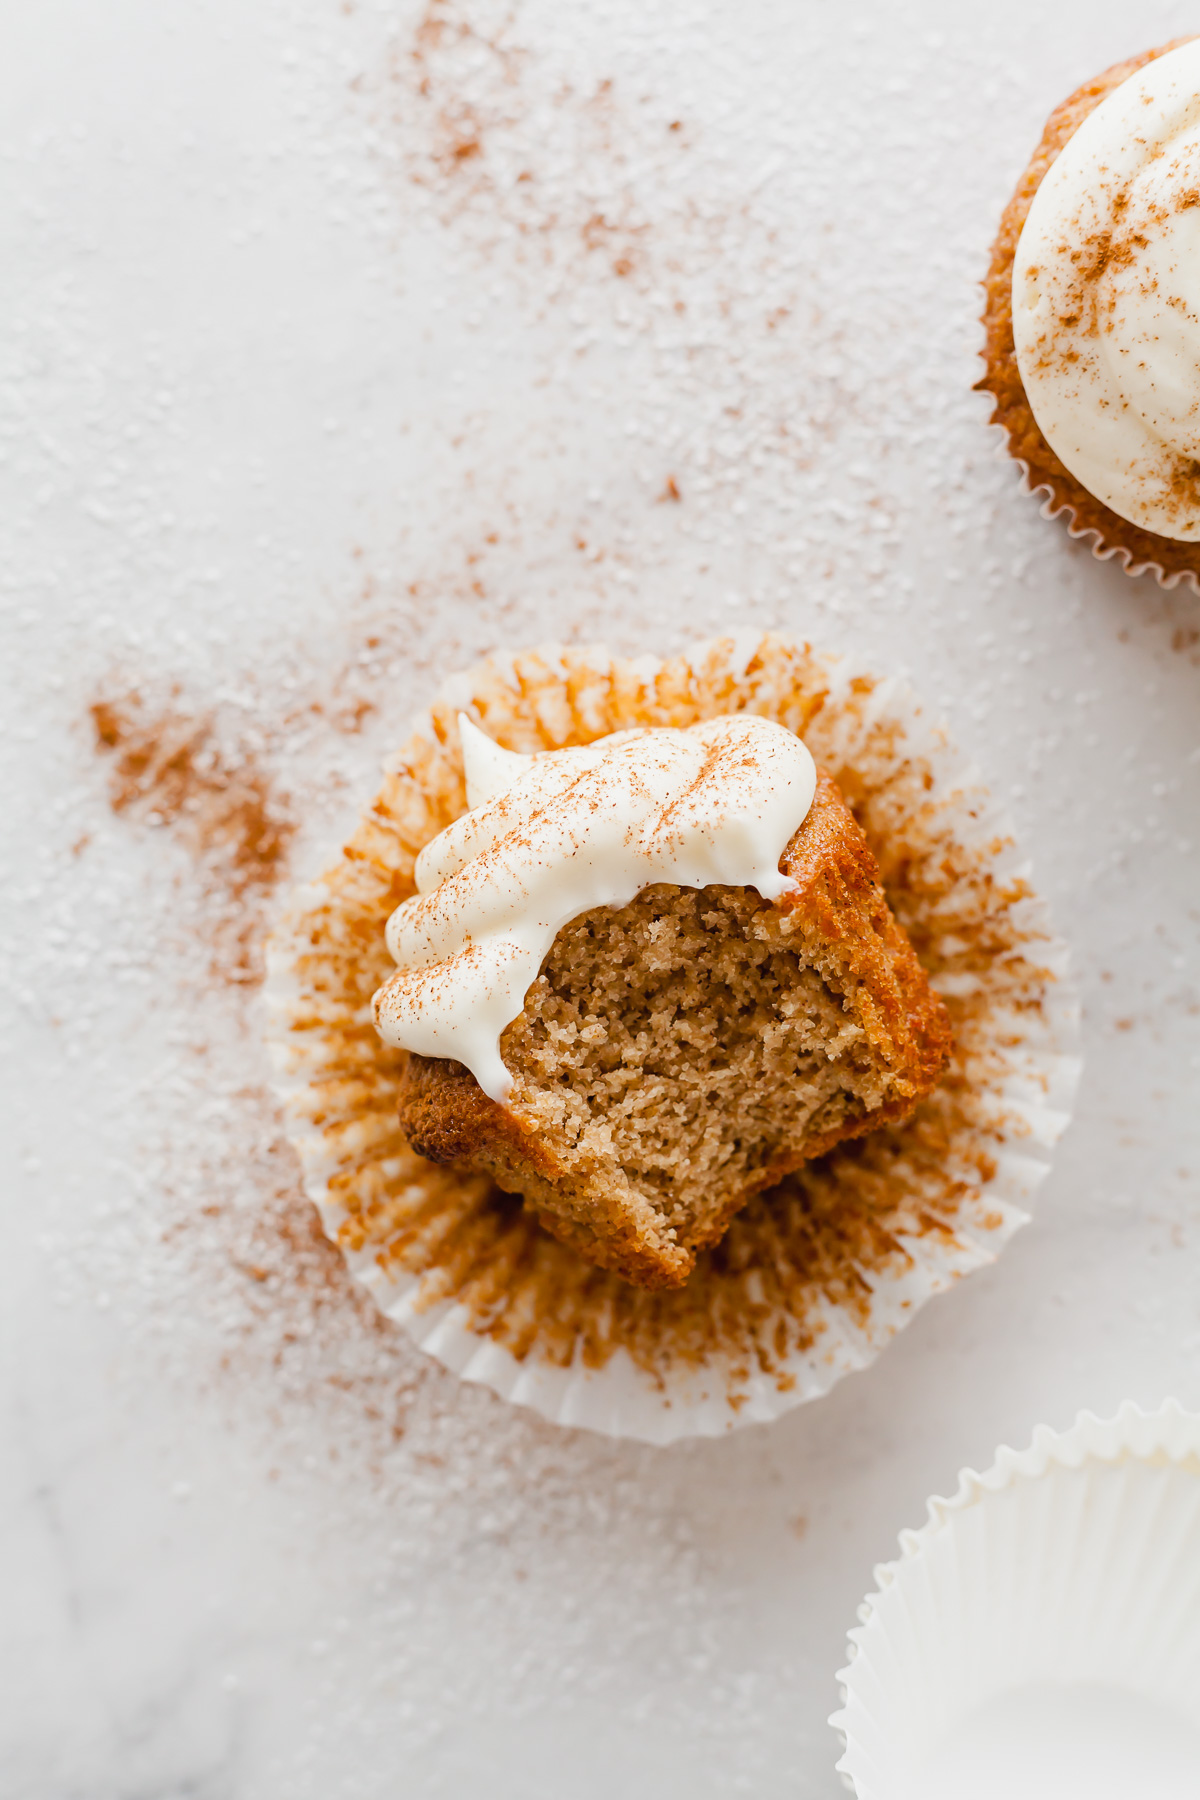 an applesauce cupcake laying on its side in the wrapper with a bite taken out